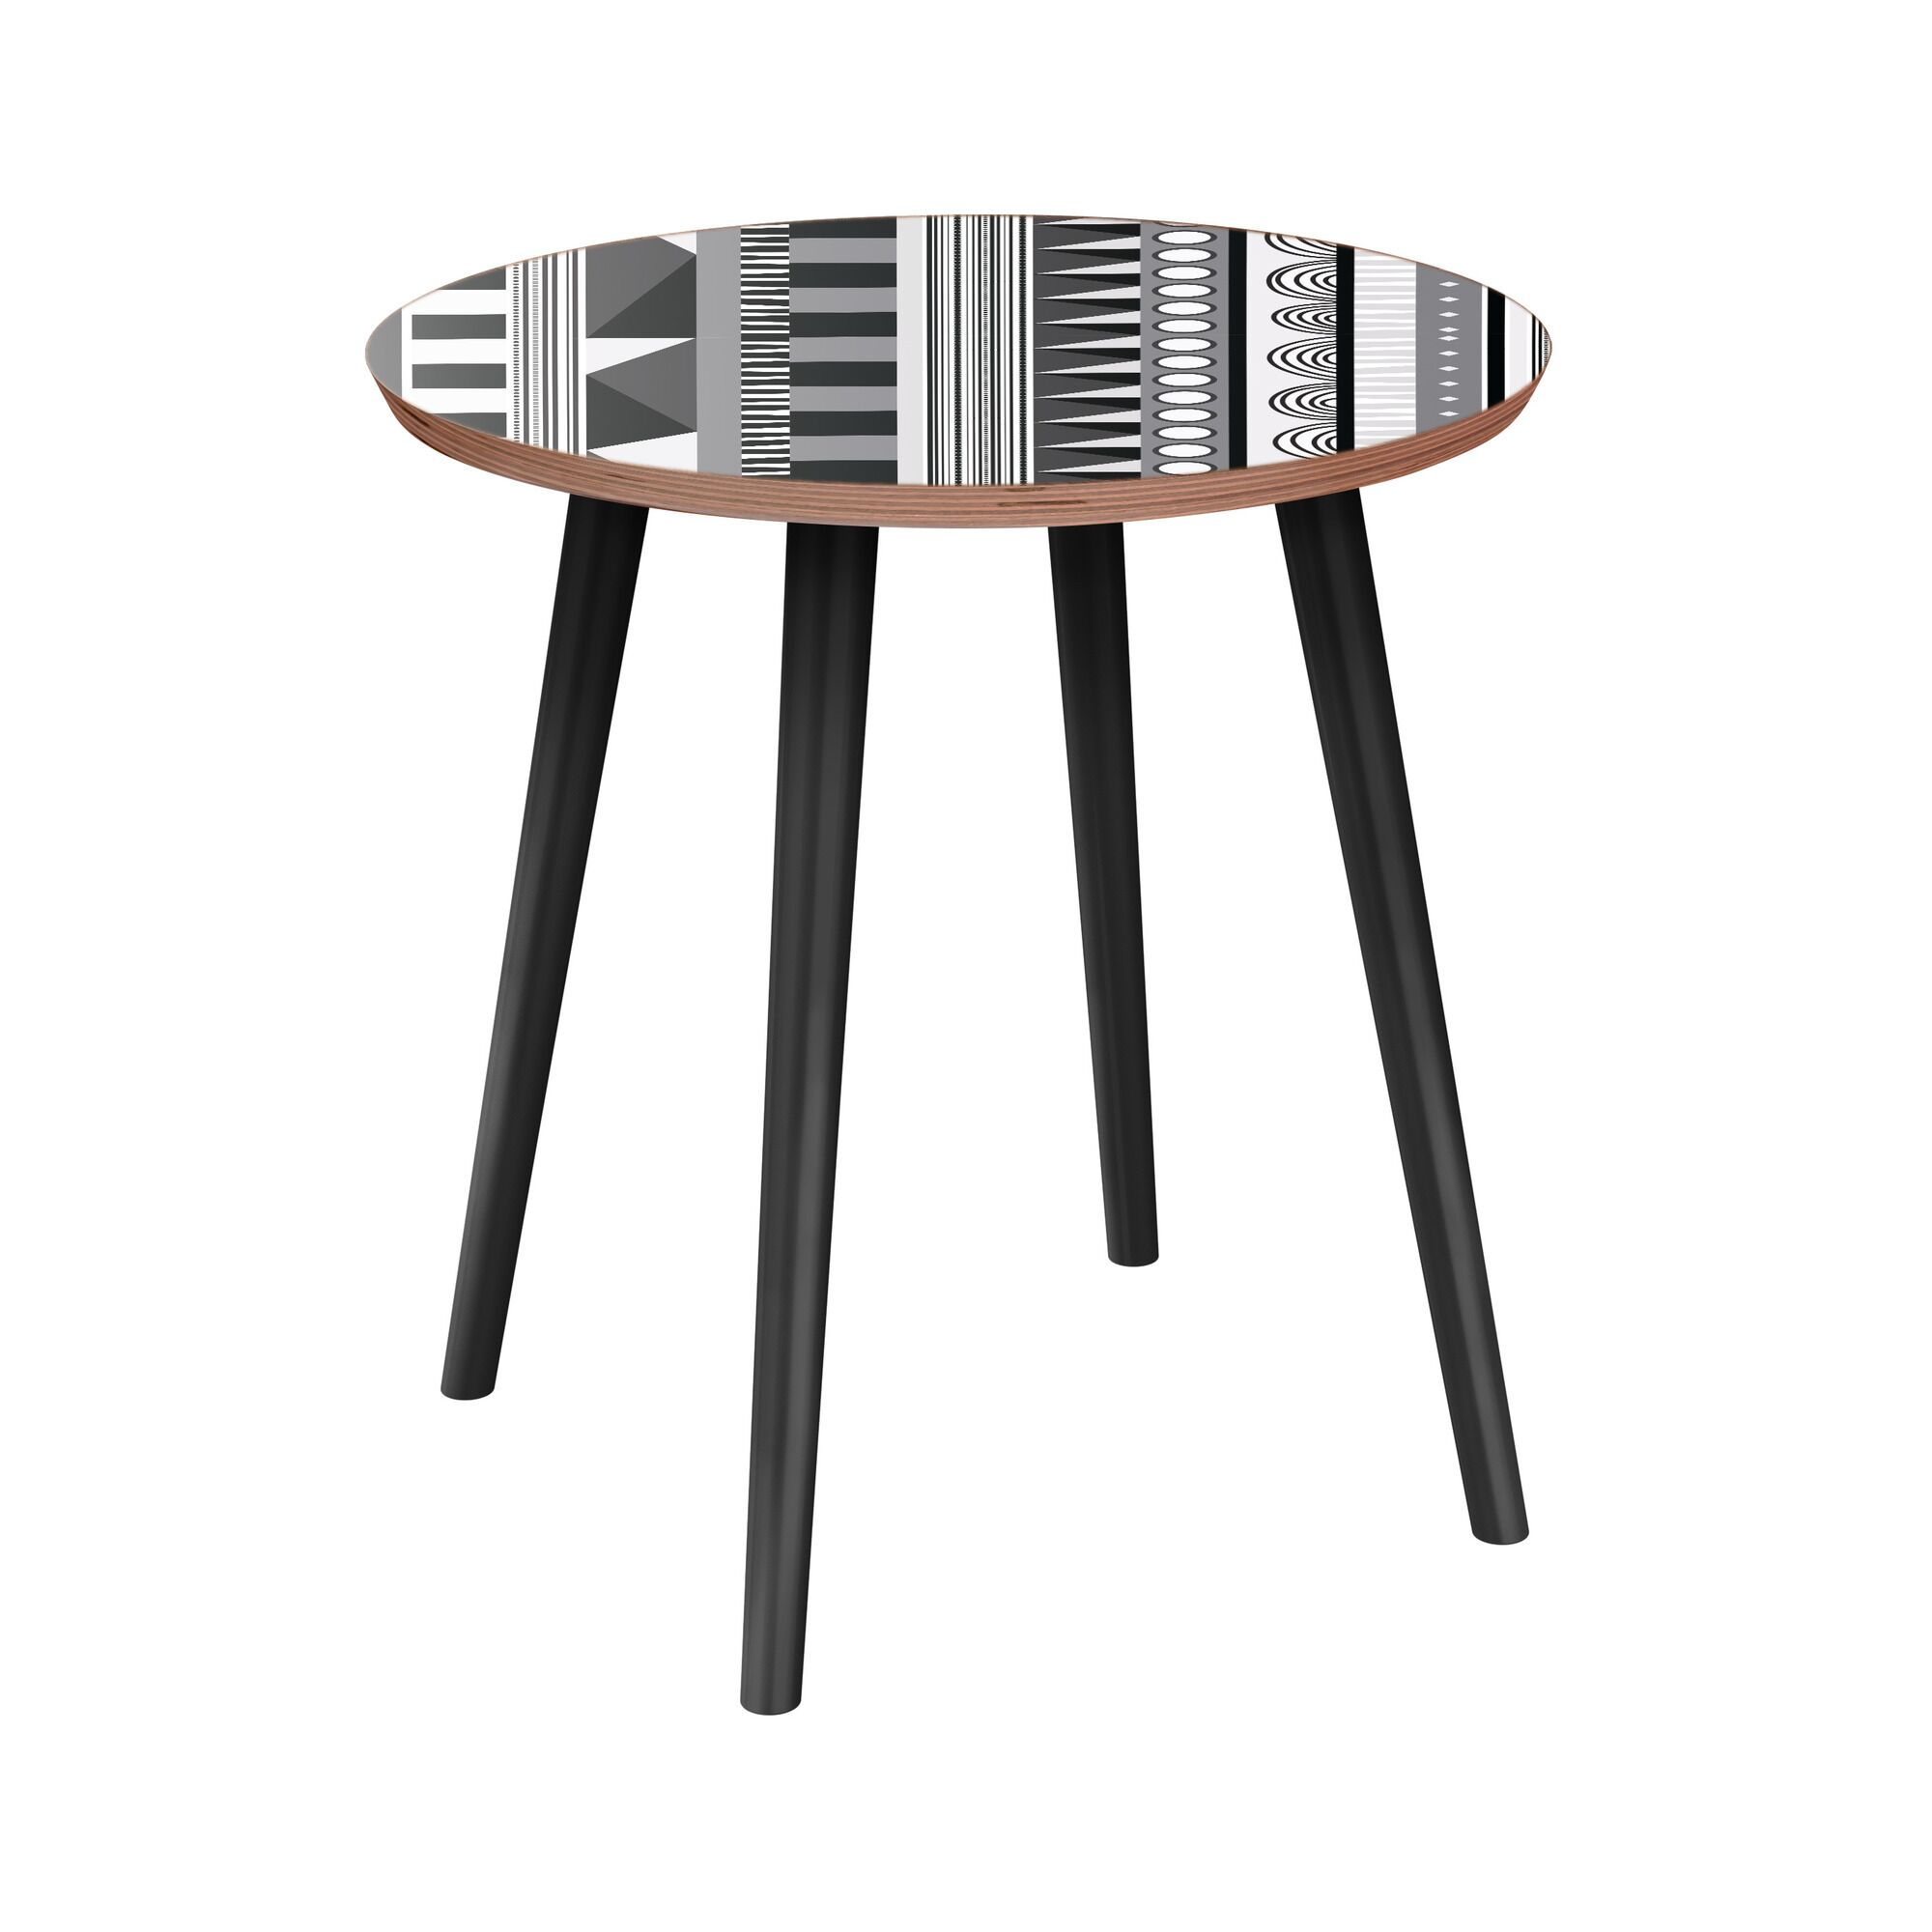 Hopson End Table Table Base Color: Black, Table Top Color: Walnut